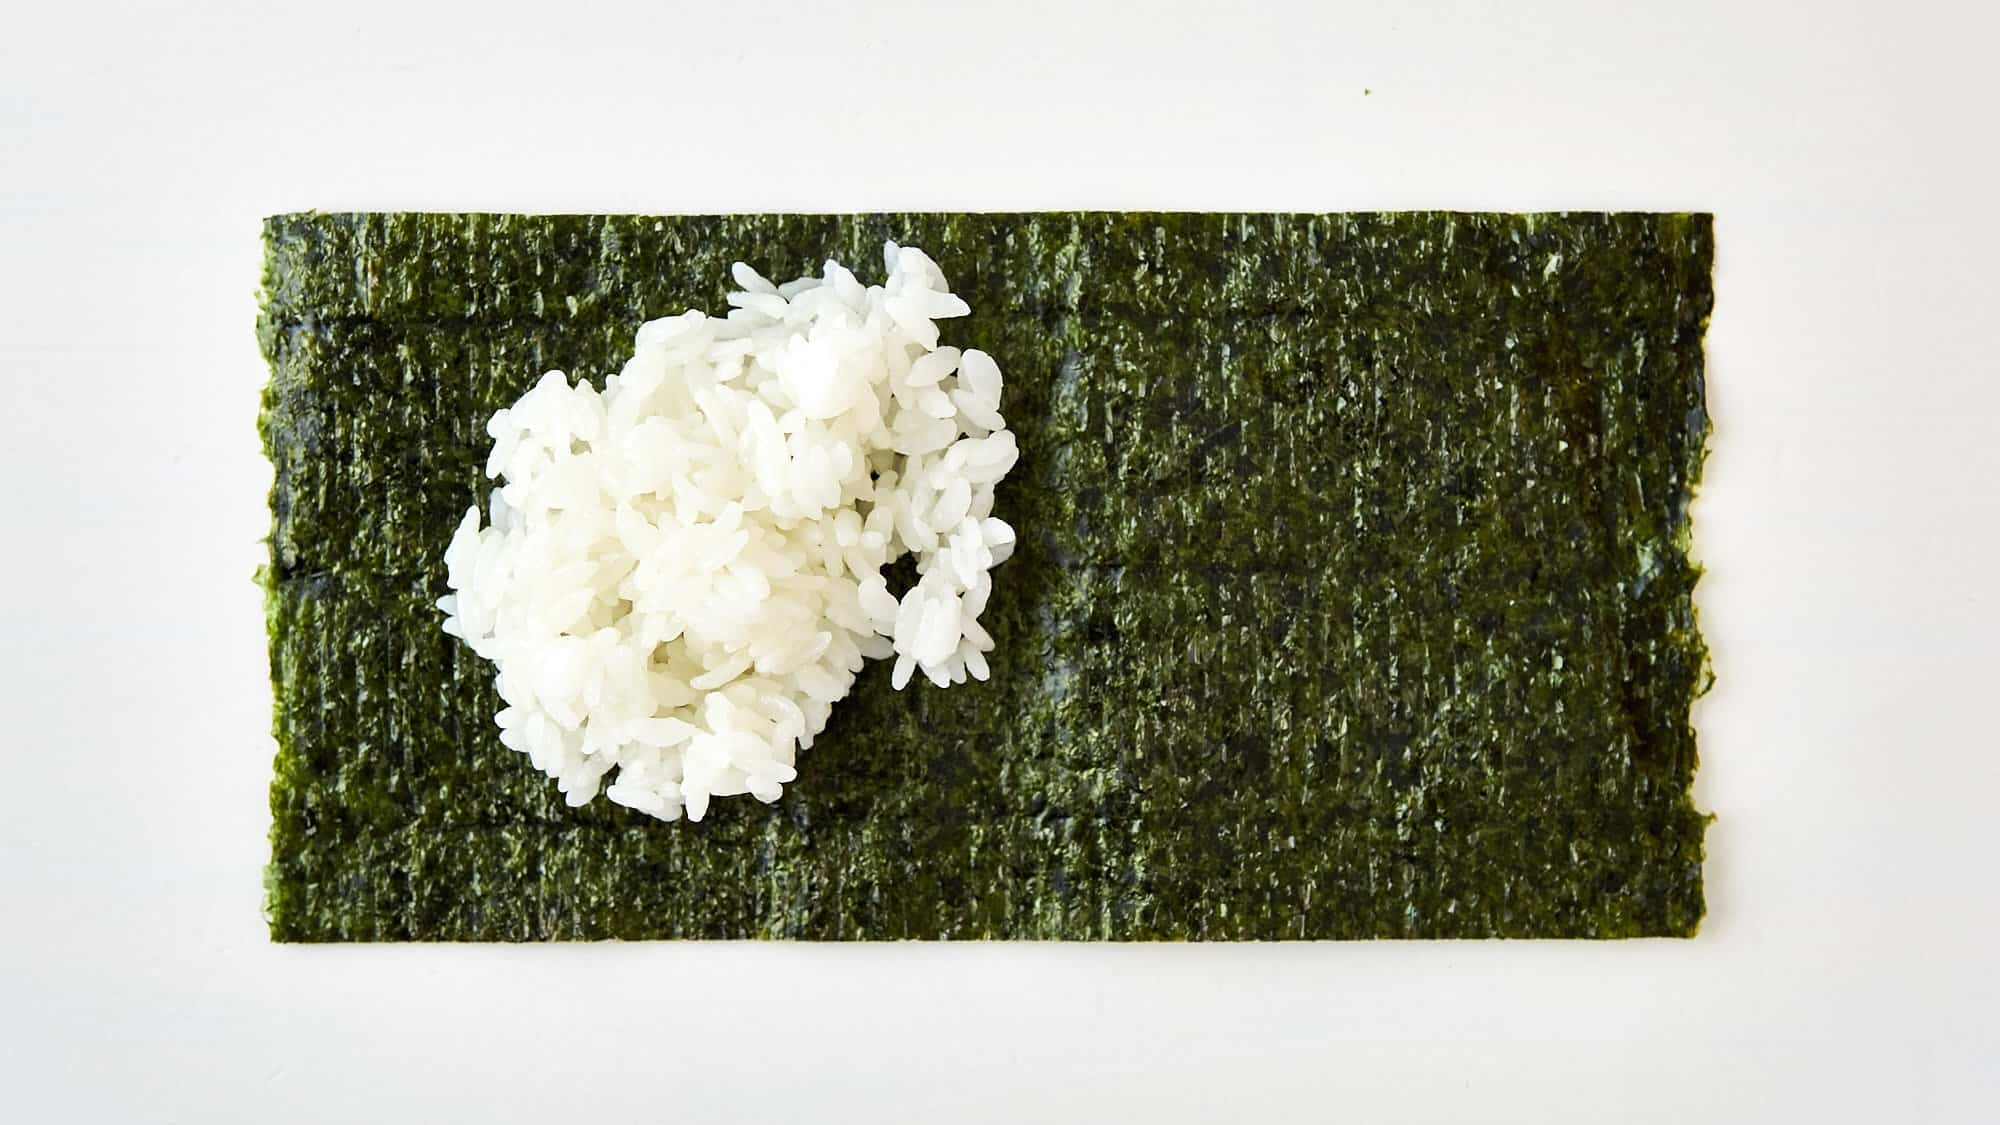 Add some rice to the rough side of the nori for Temaki Sushi.